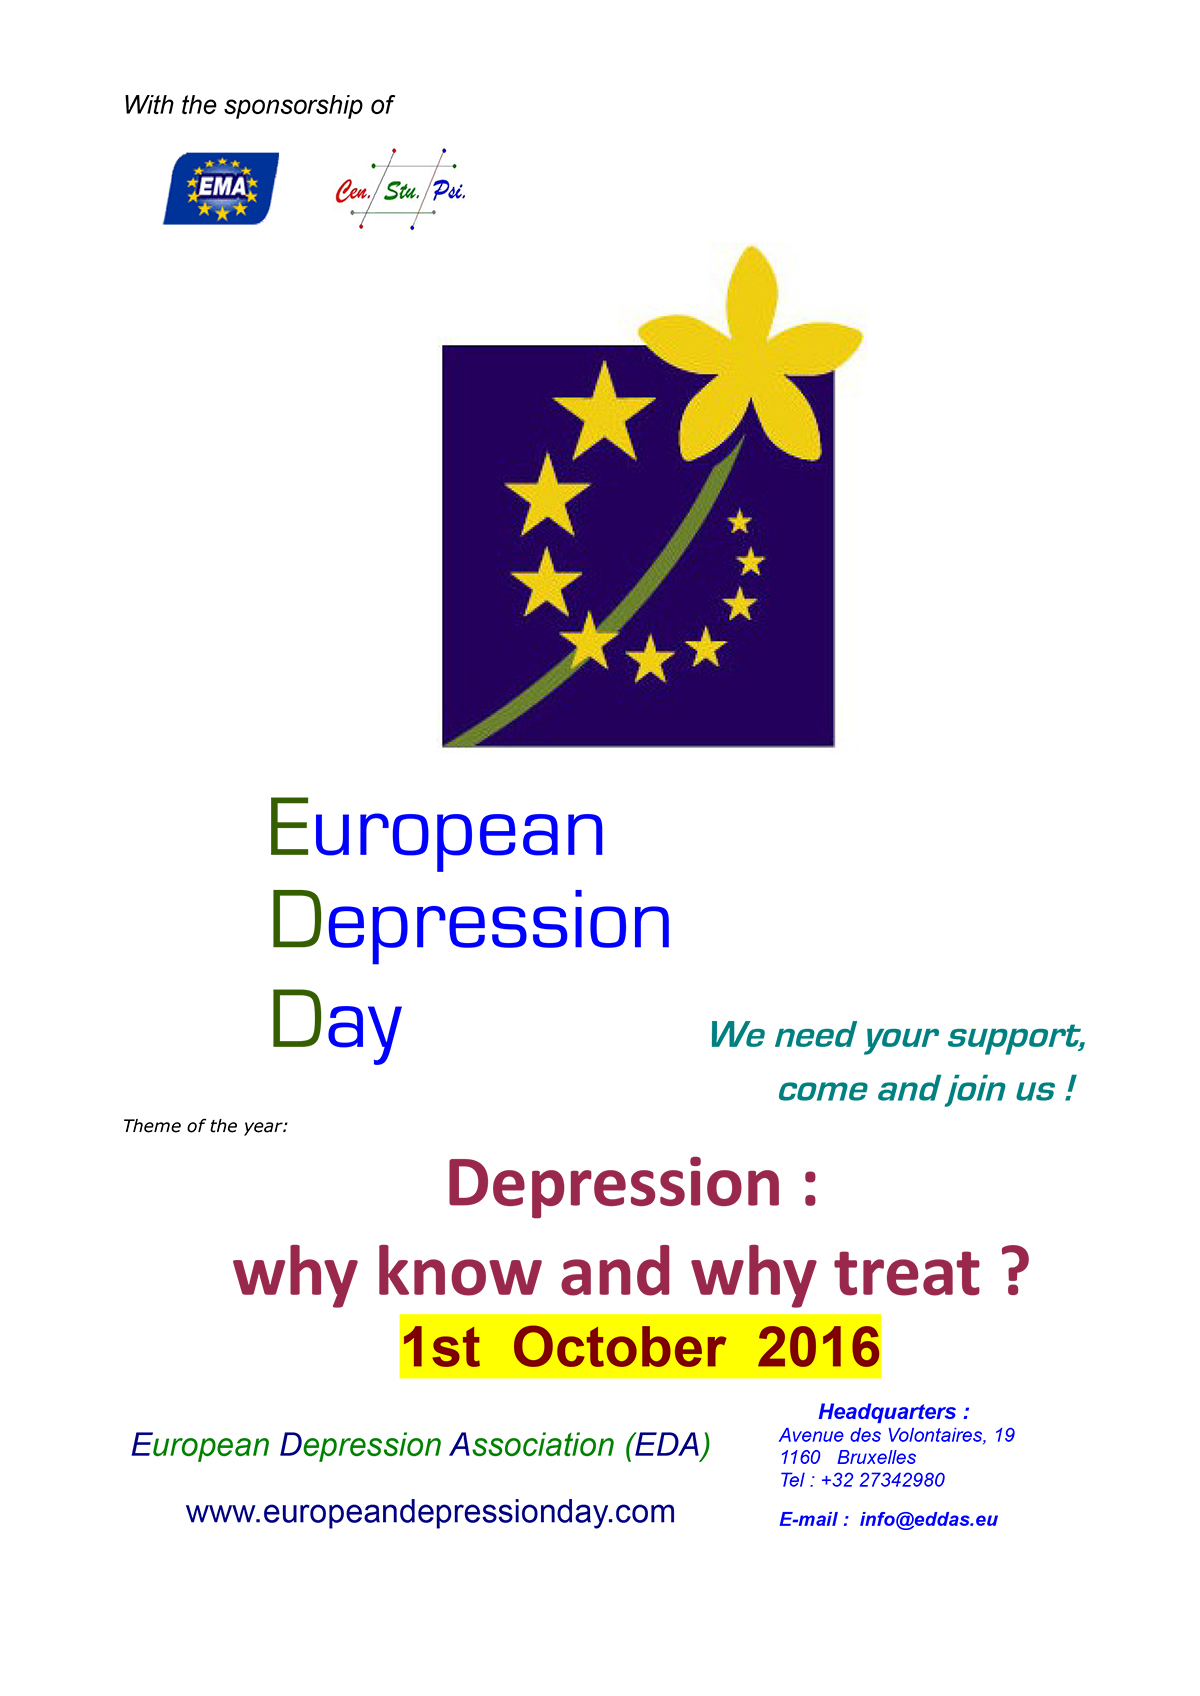 European Depression Day 2016